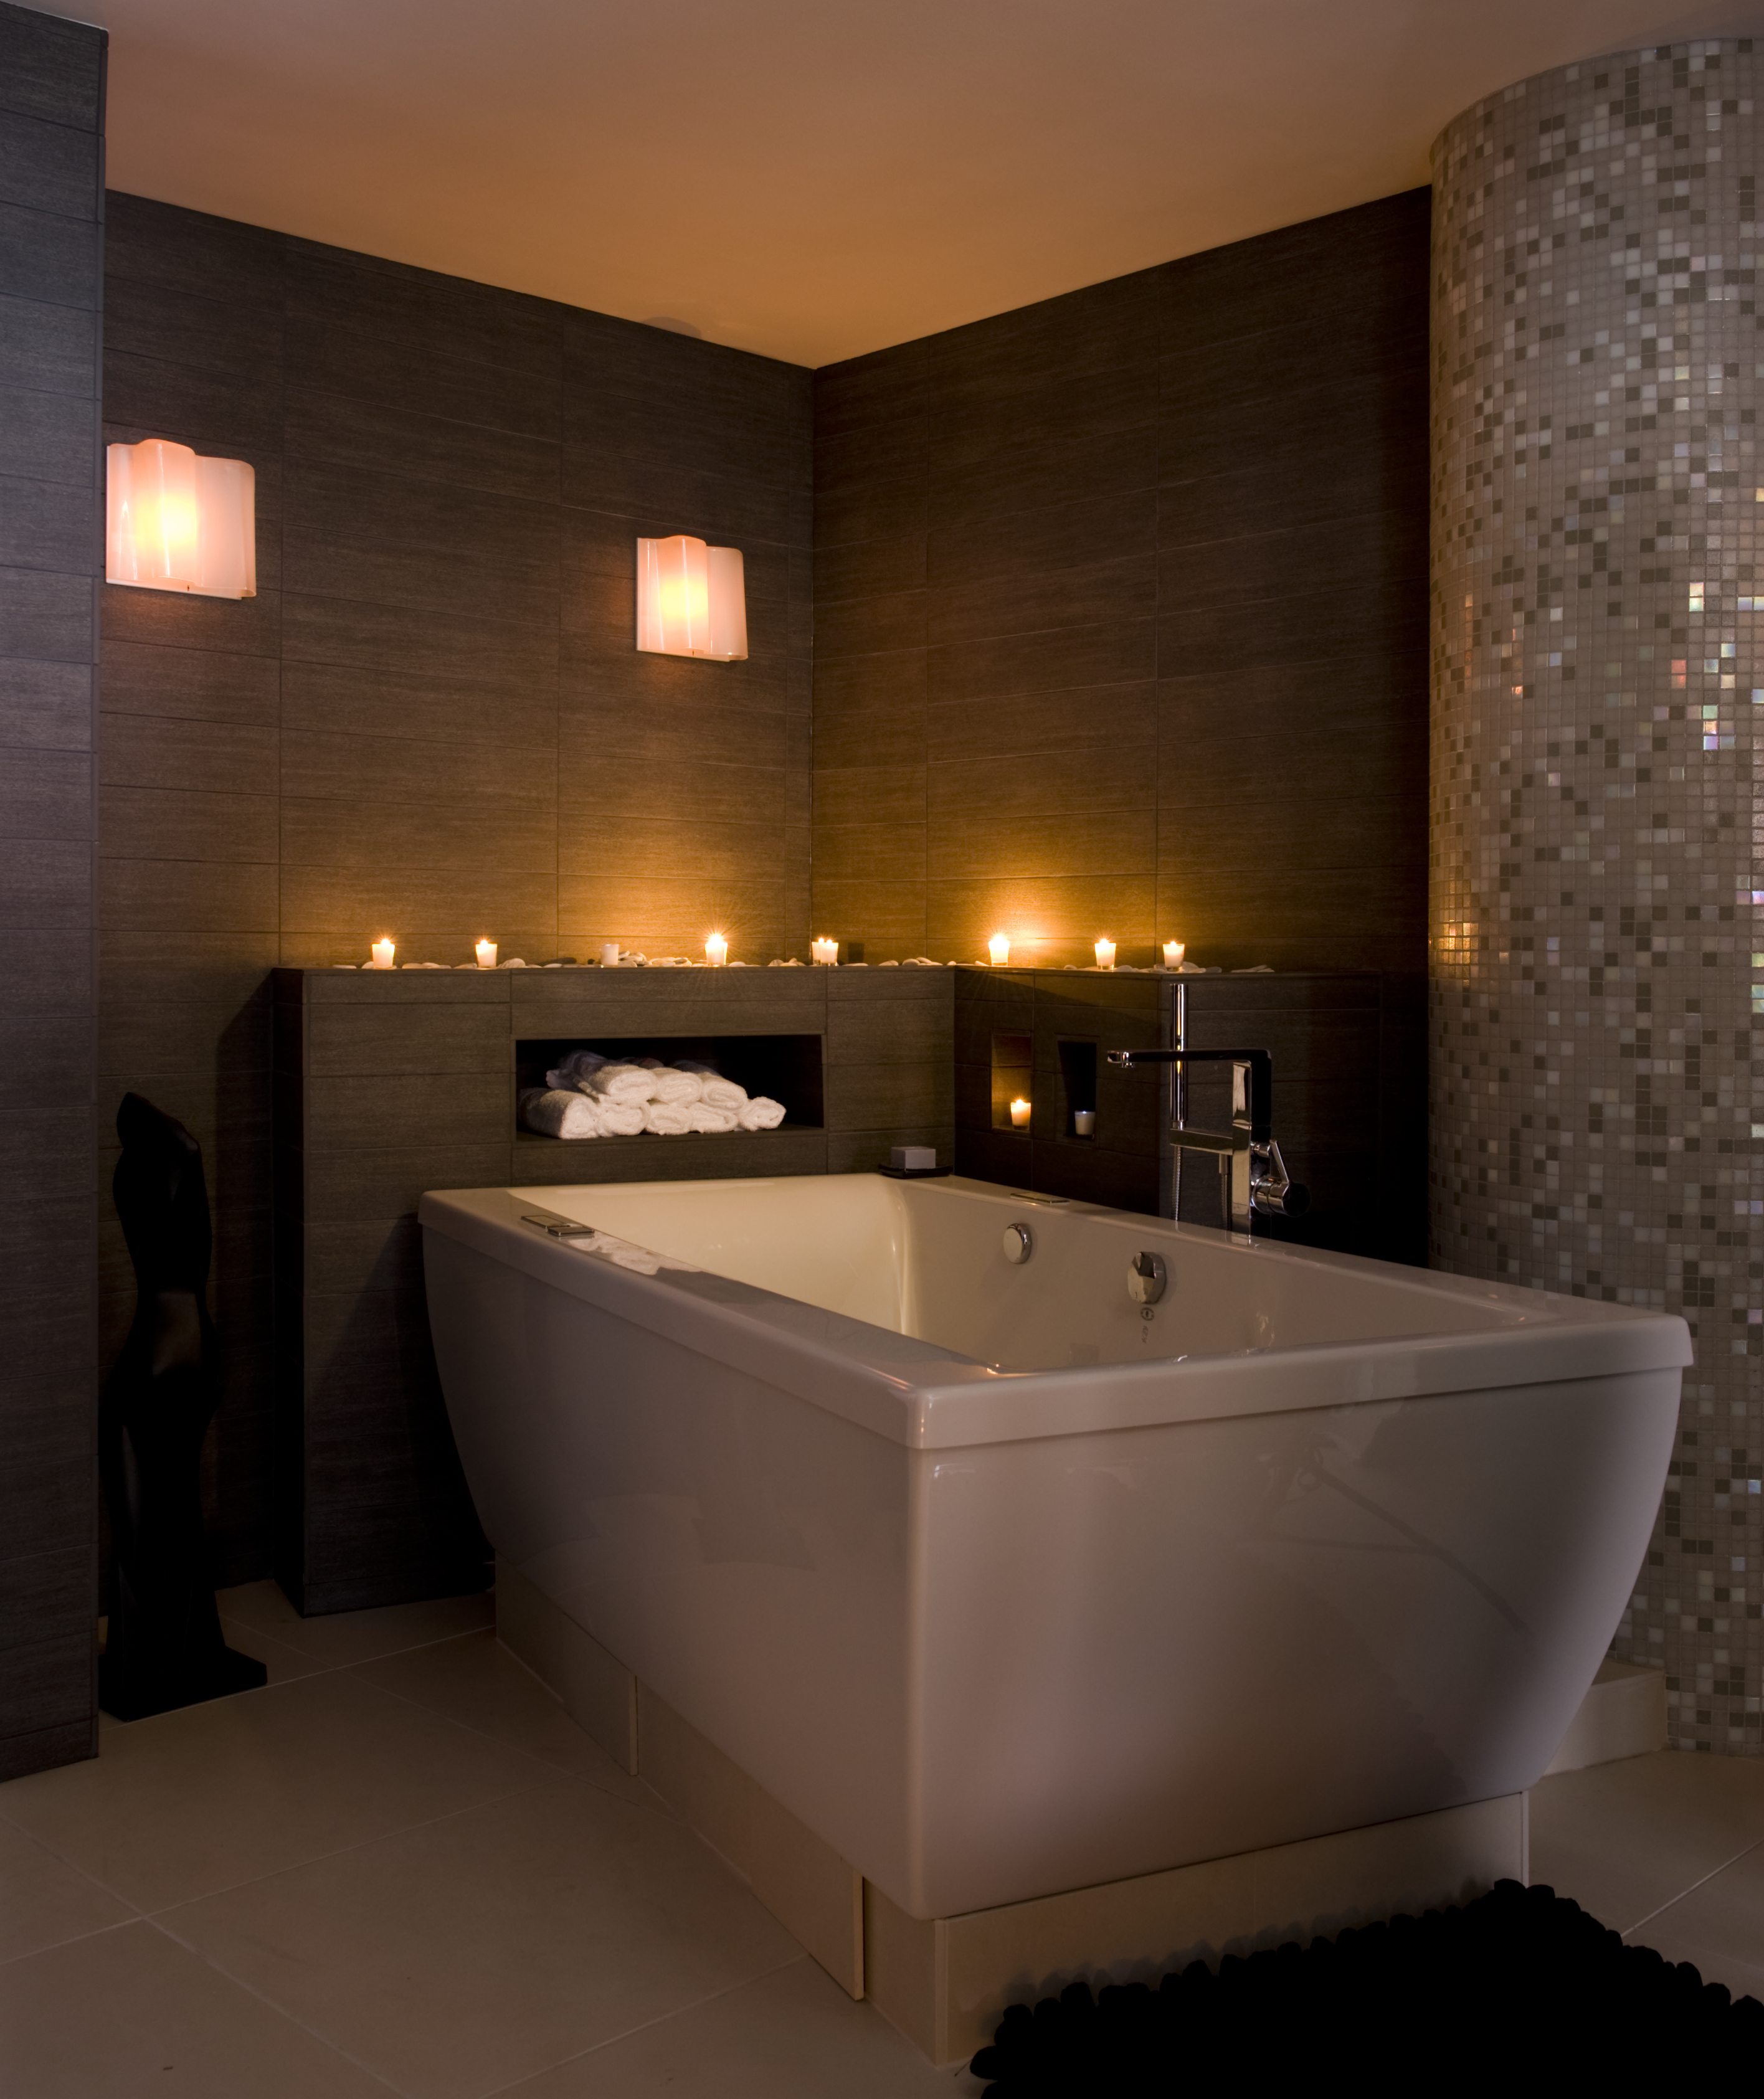 Spa like master bath with floor to ceiling porcelain tiles, double sink, huge shower with steam unit, body jets and rain shower.